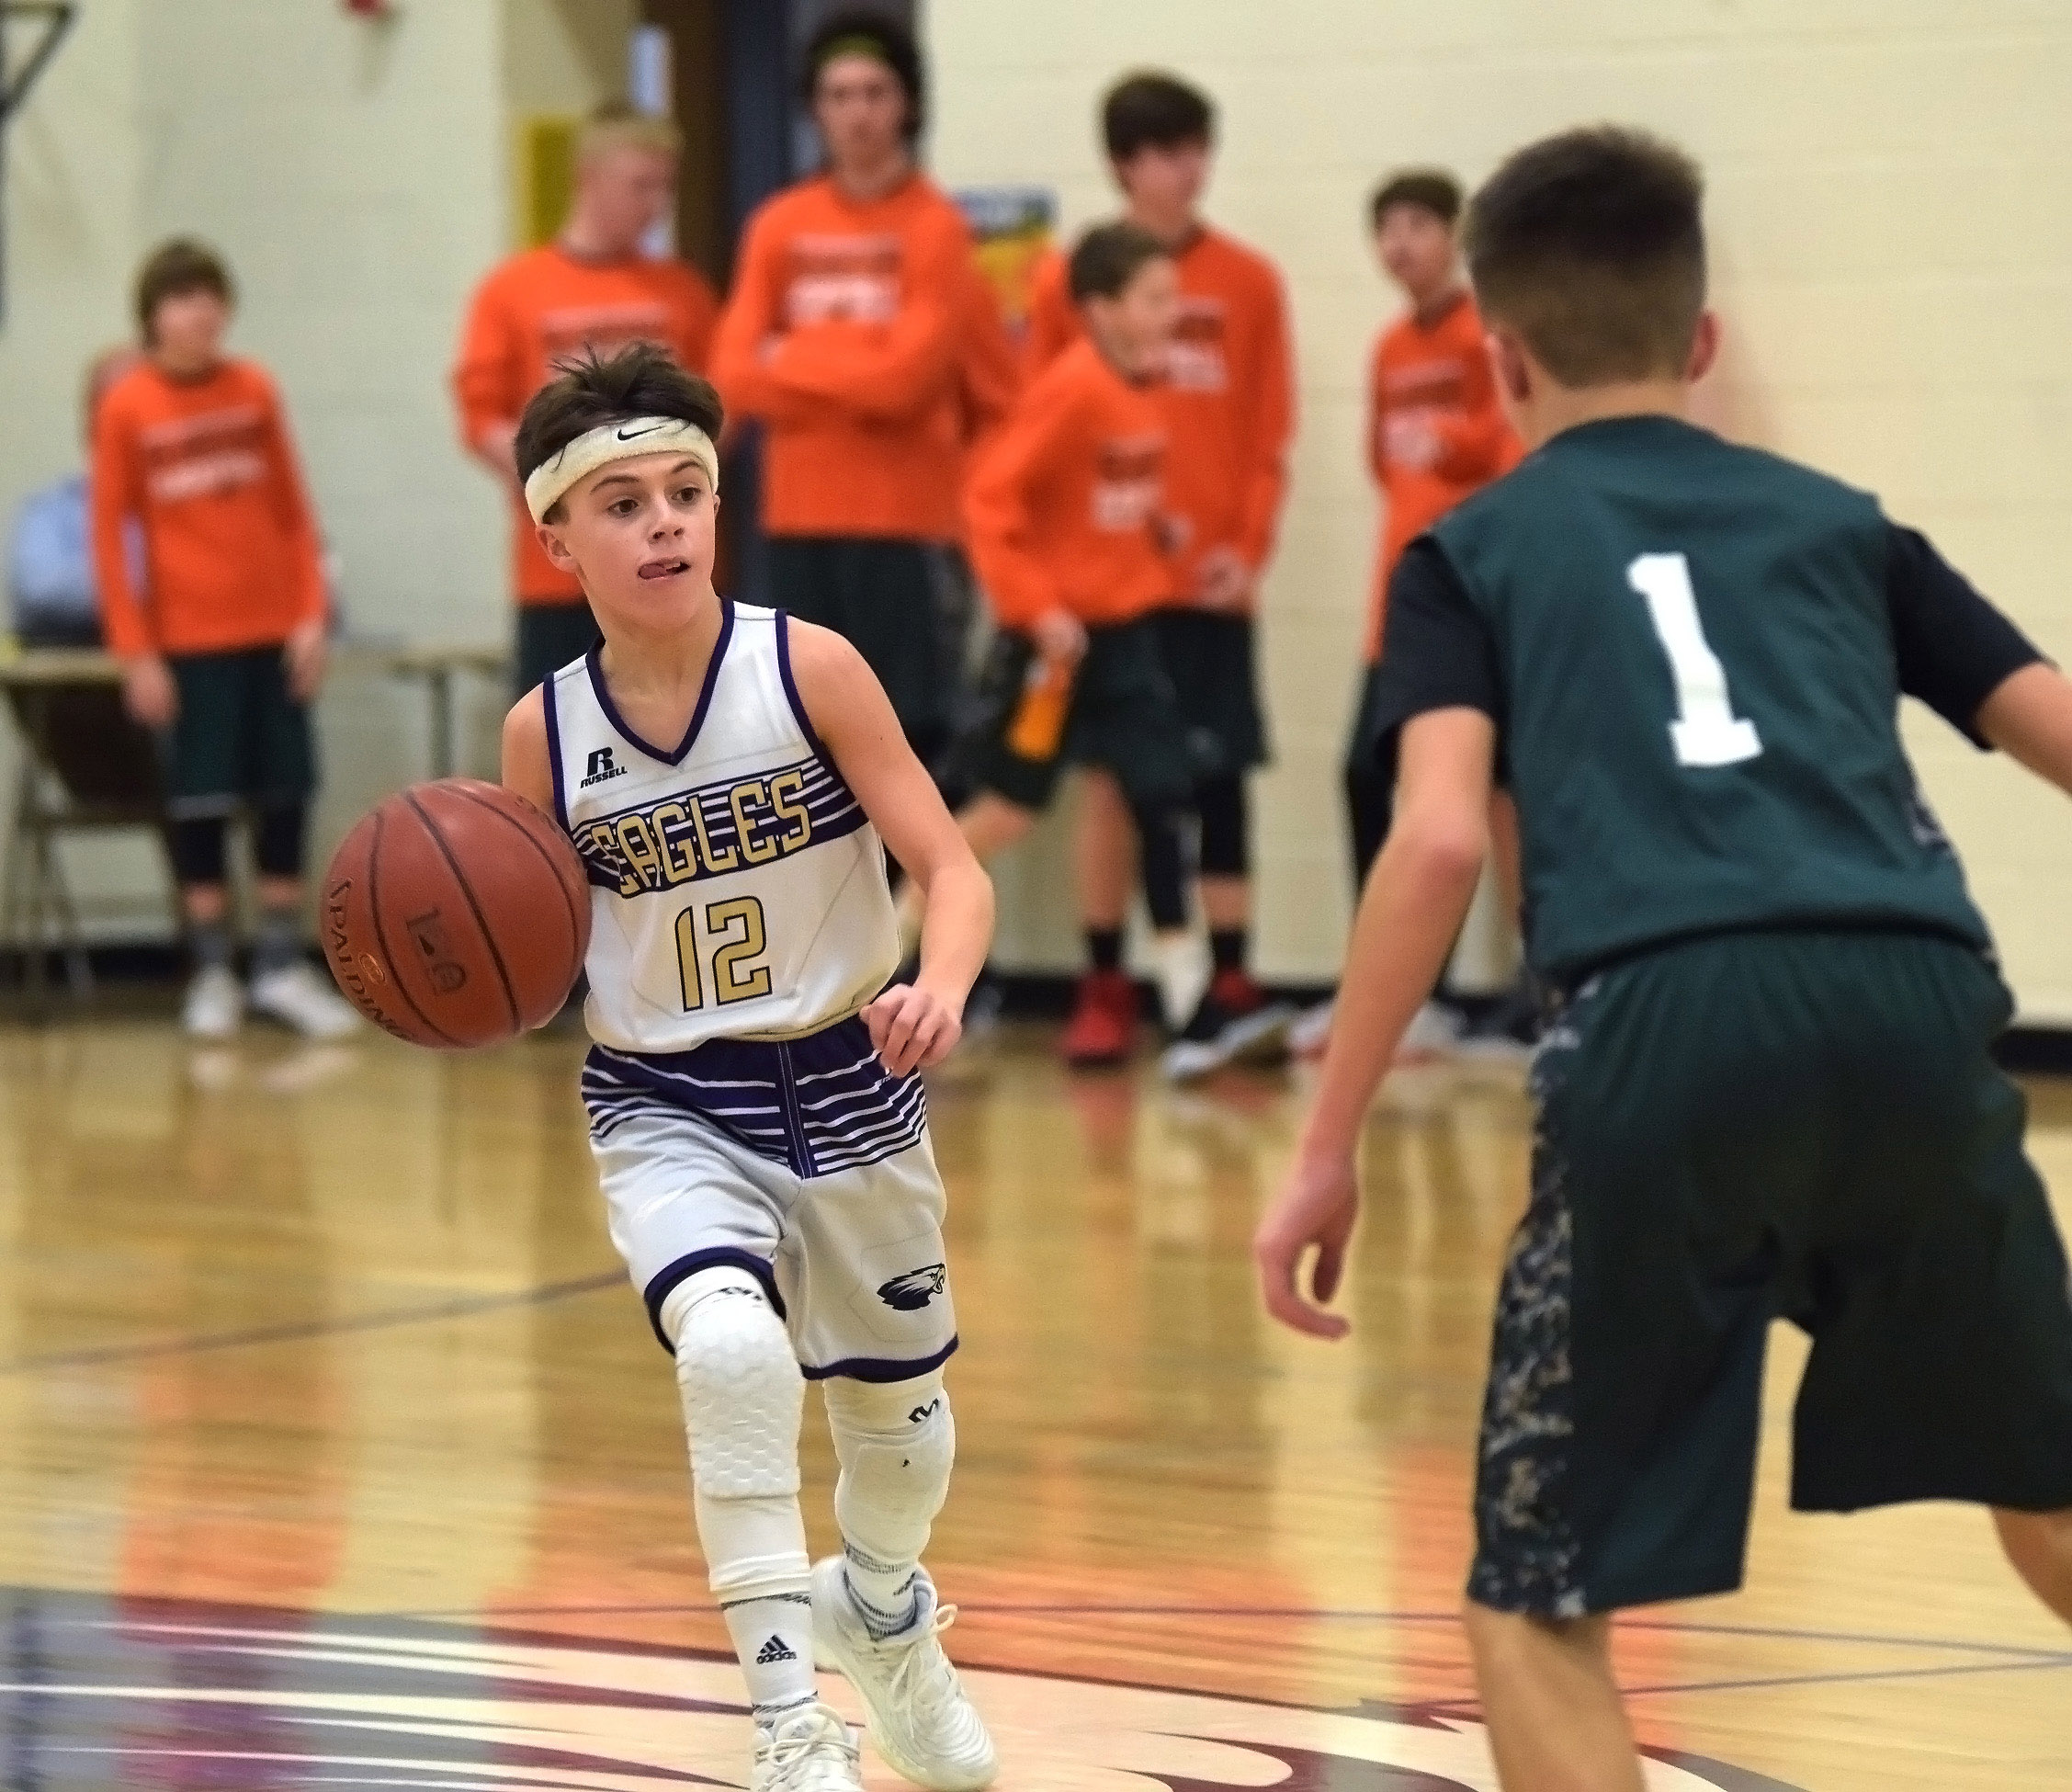 CMS seventh-grader Chase Hord dribbles.